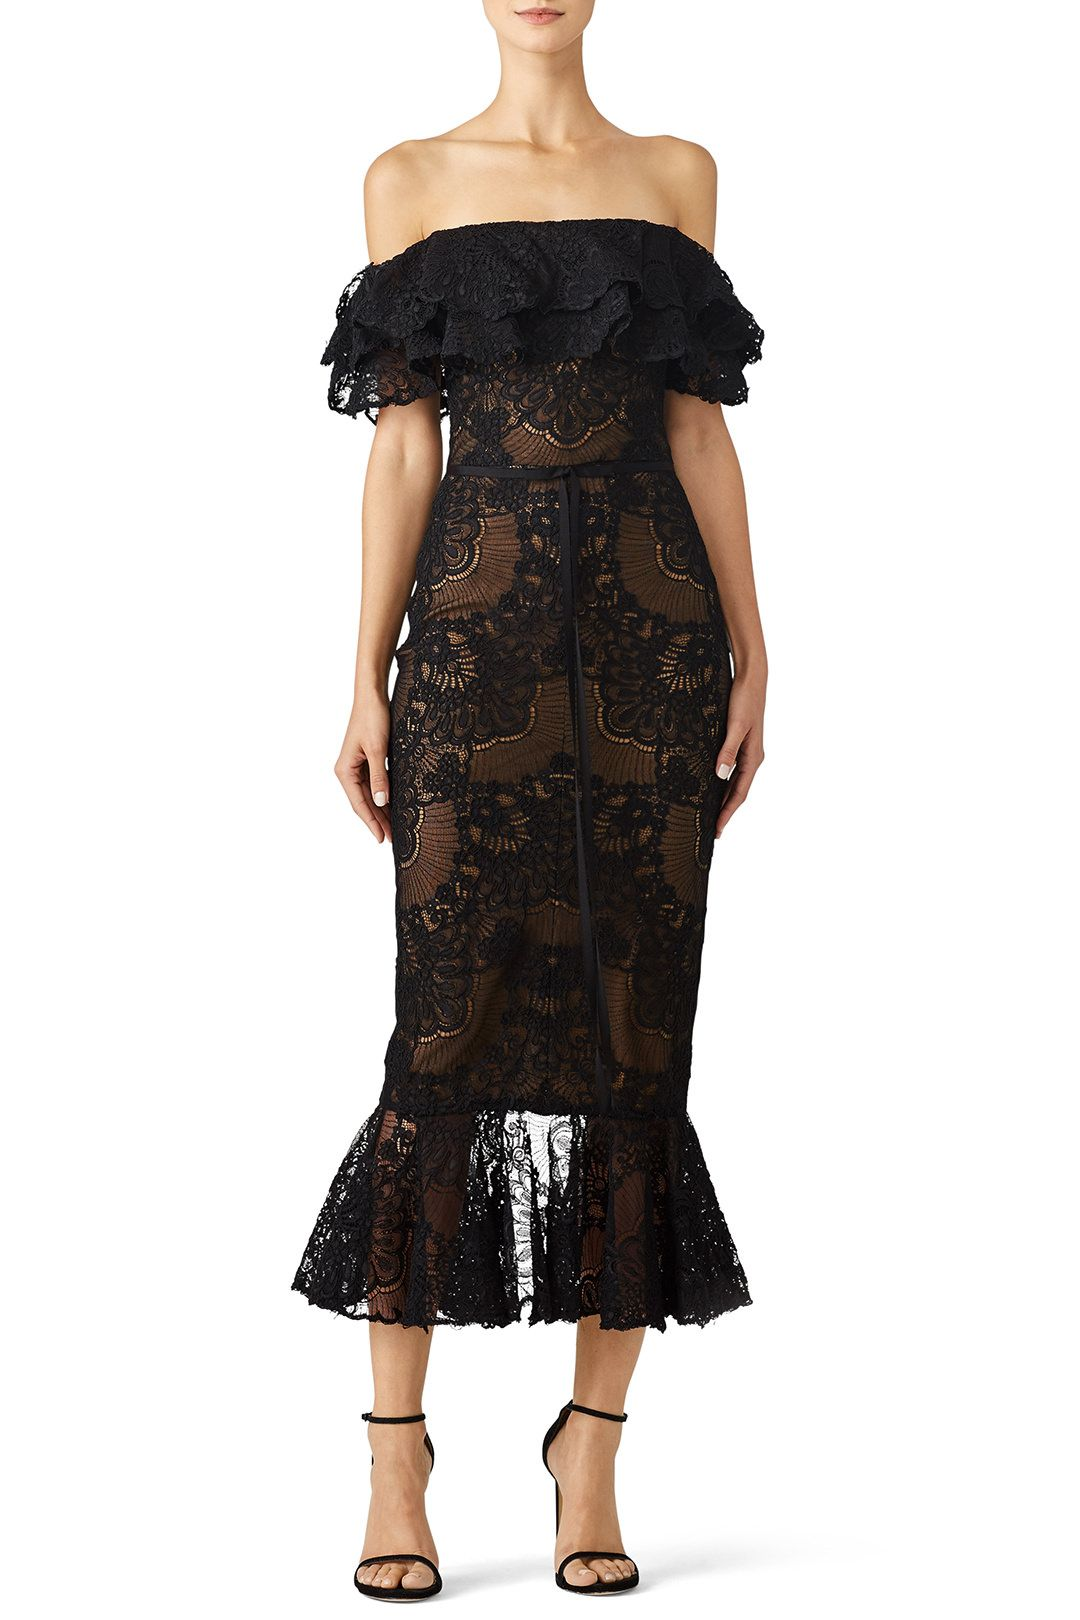 Marchesa notte green lace dress  Laced Cocktail Dress   dresses   Pinterest  Dresses Lace and